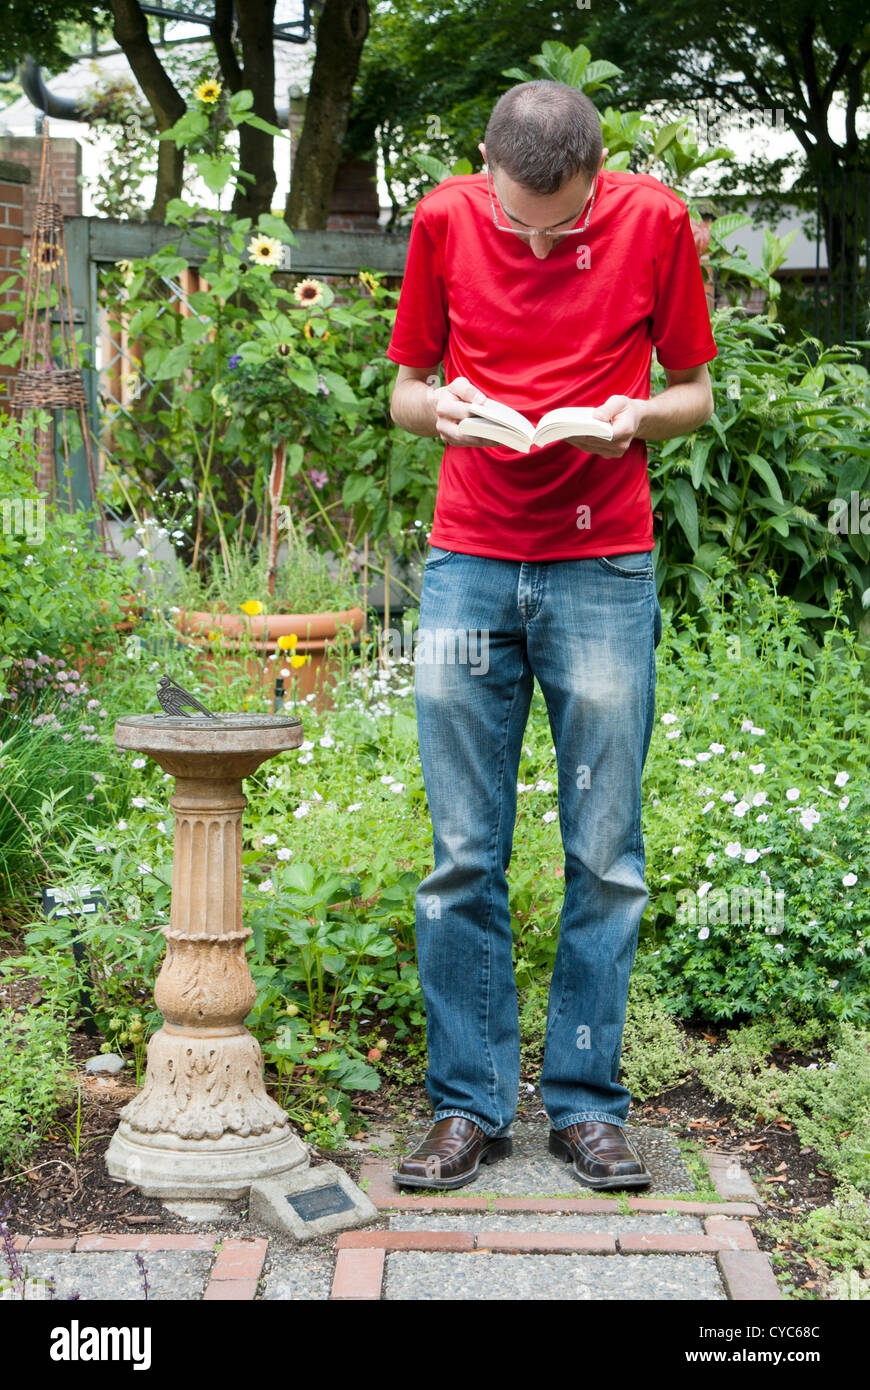 A man is standing up in a public garden reading a book - Stock Image